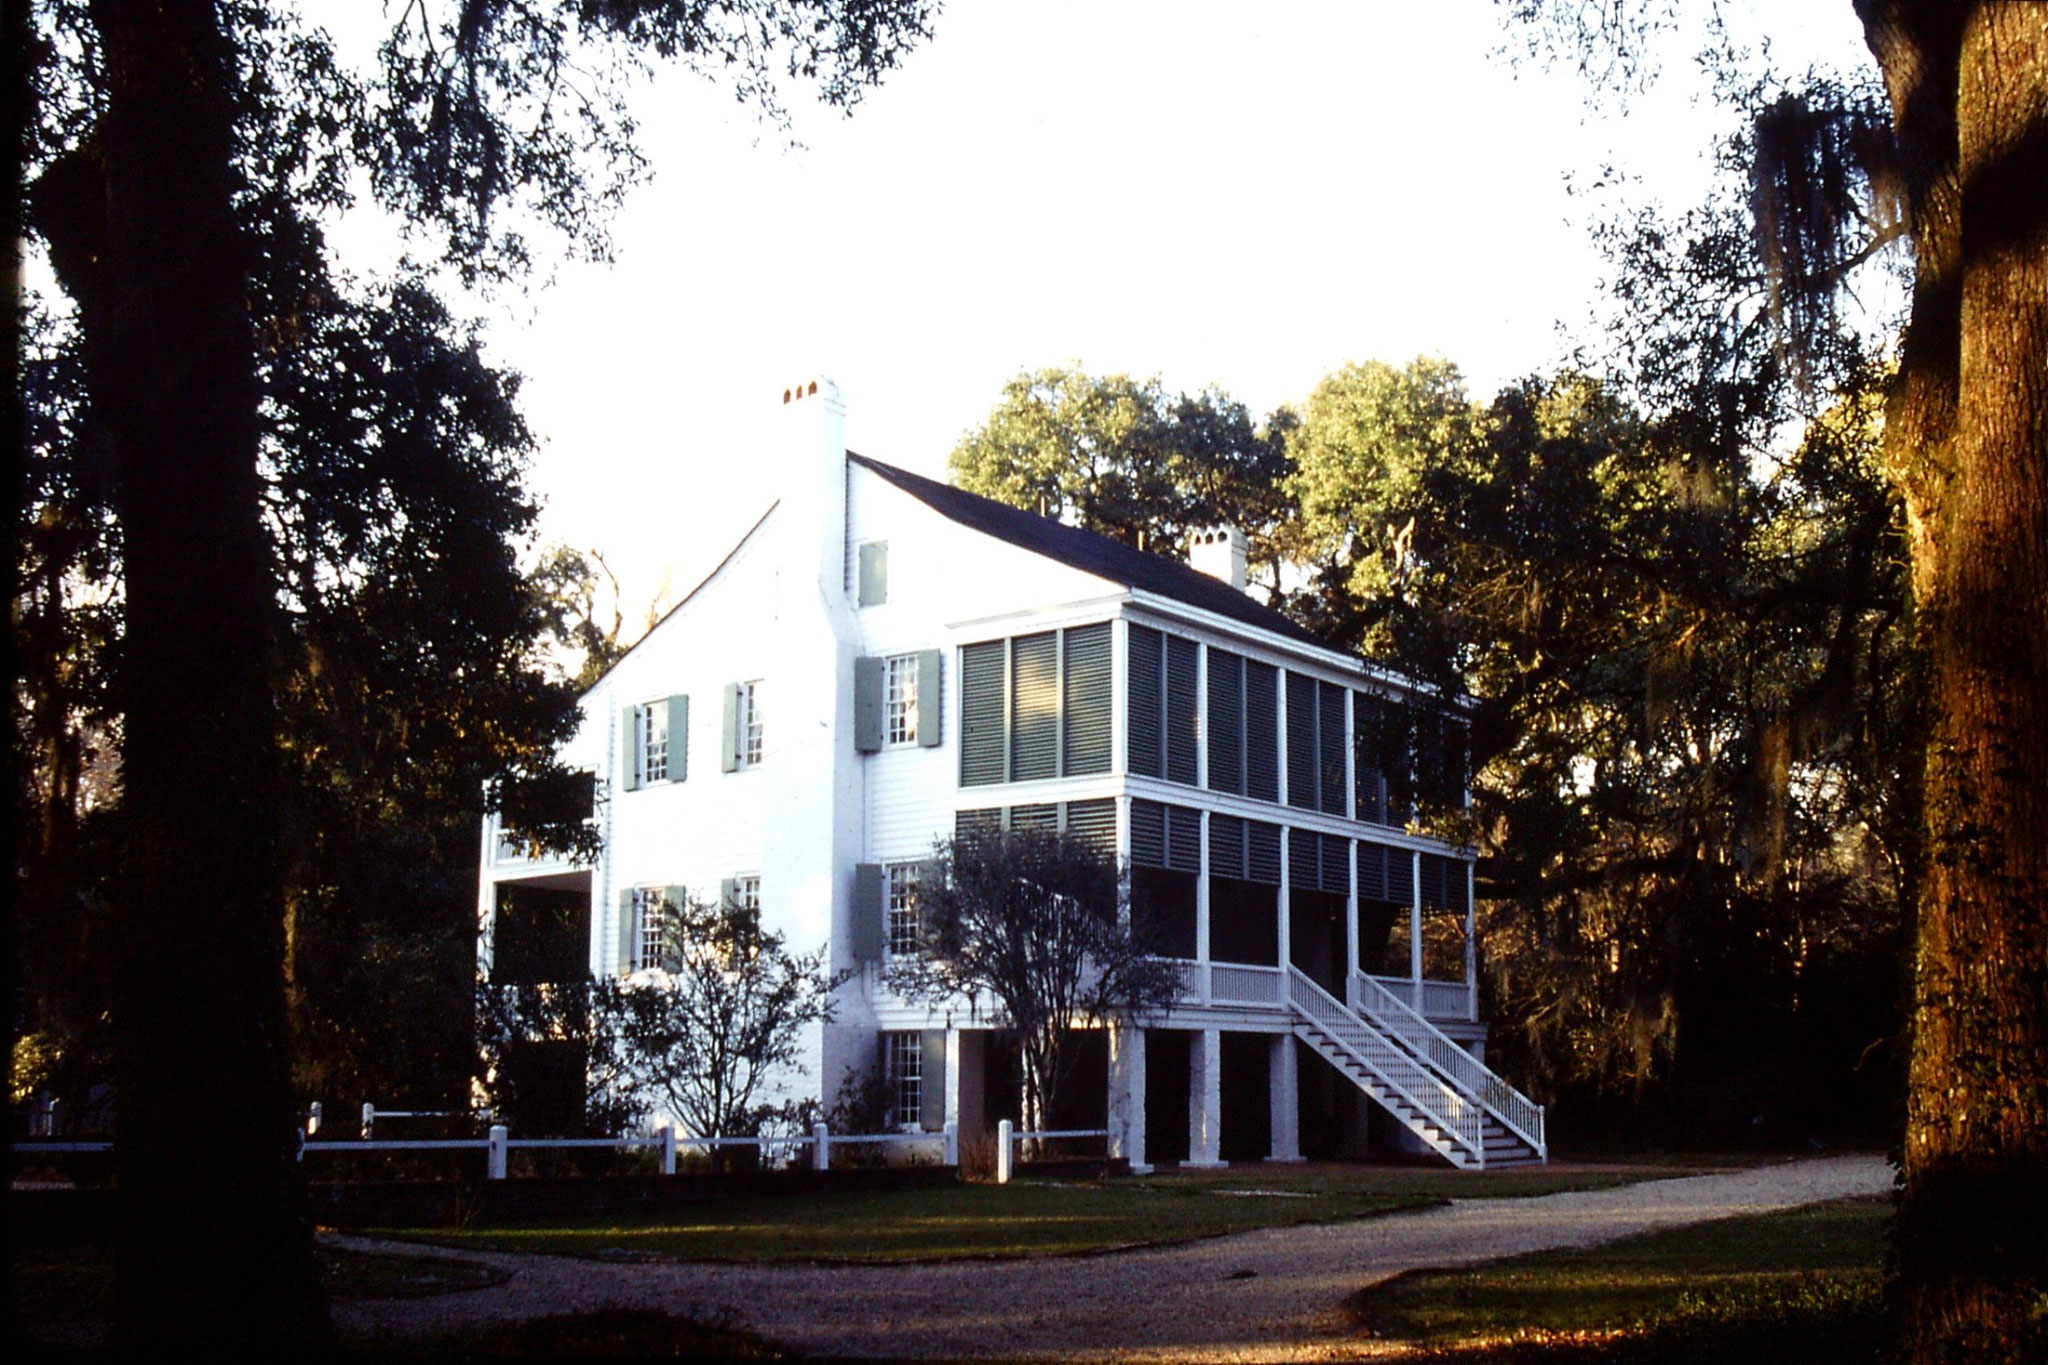 14/1/1991: 37: Louisiana, Audubon House